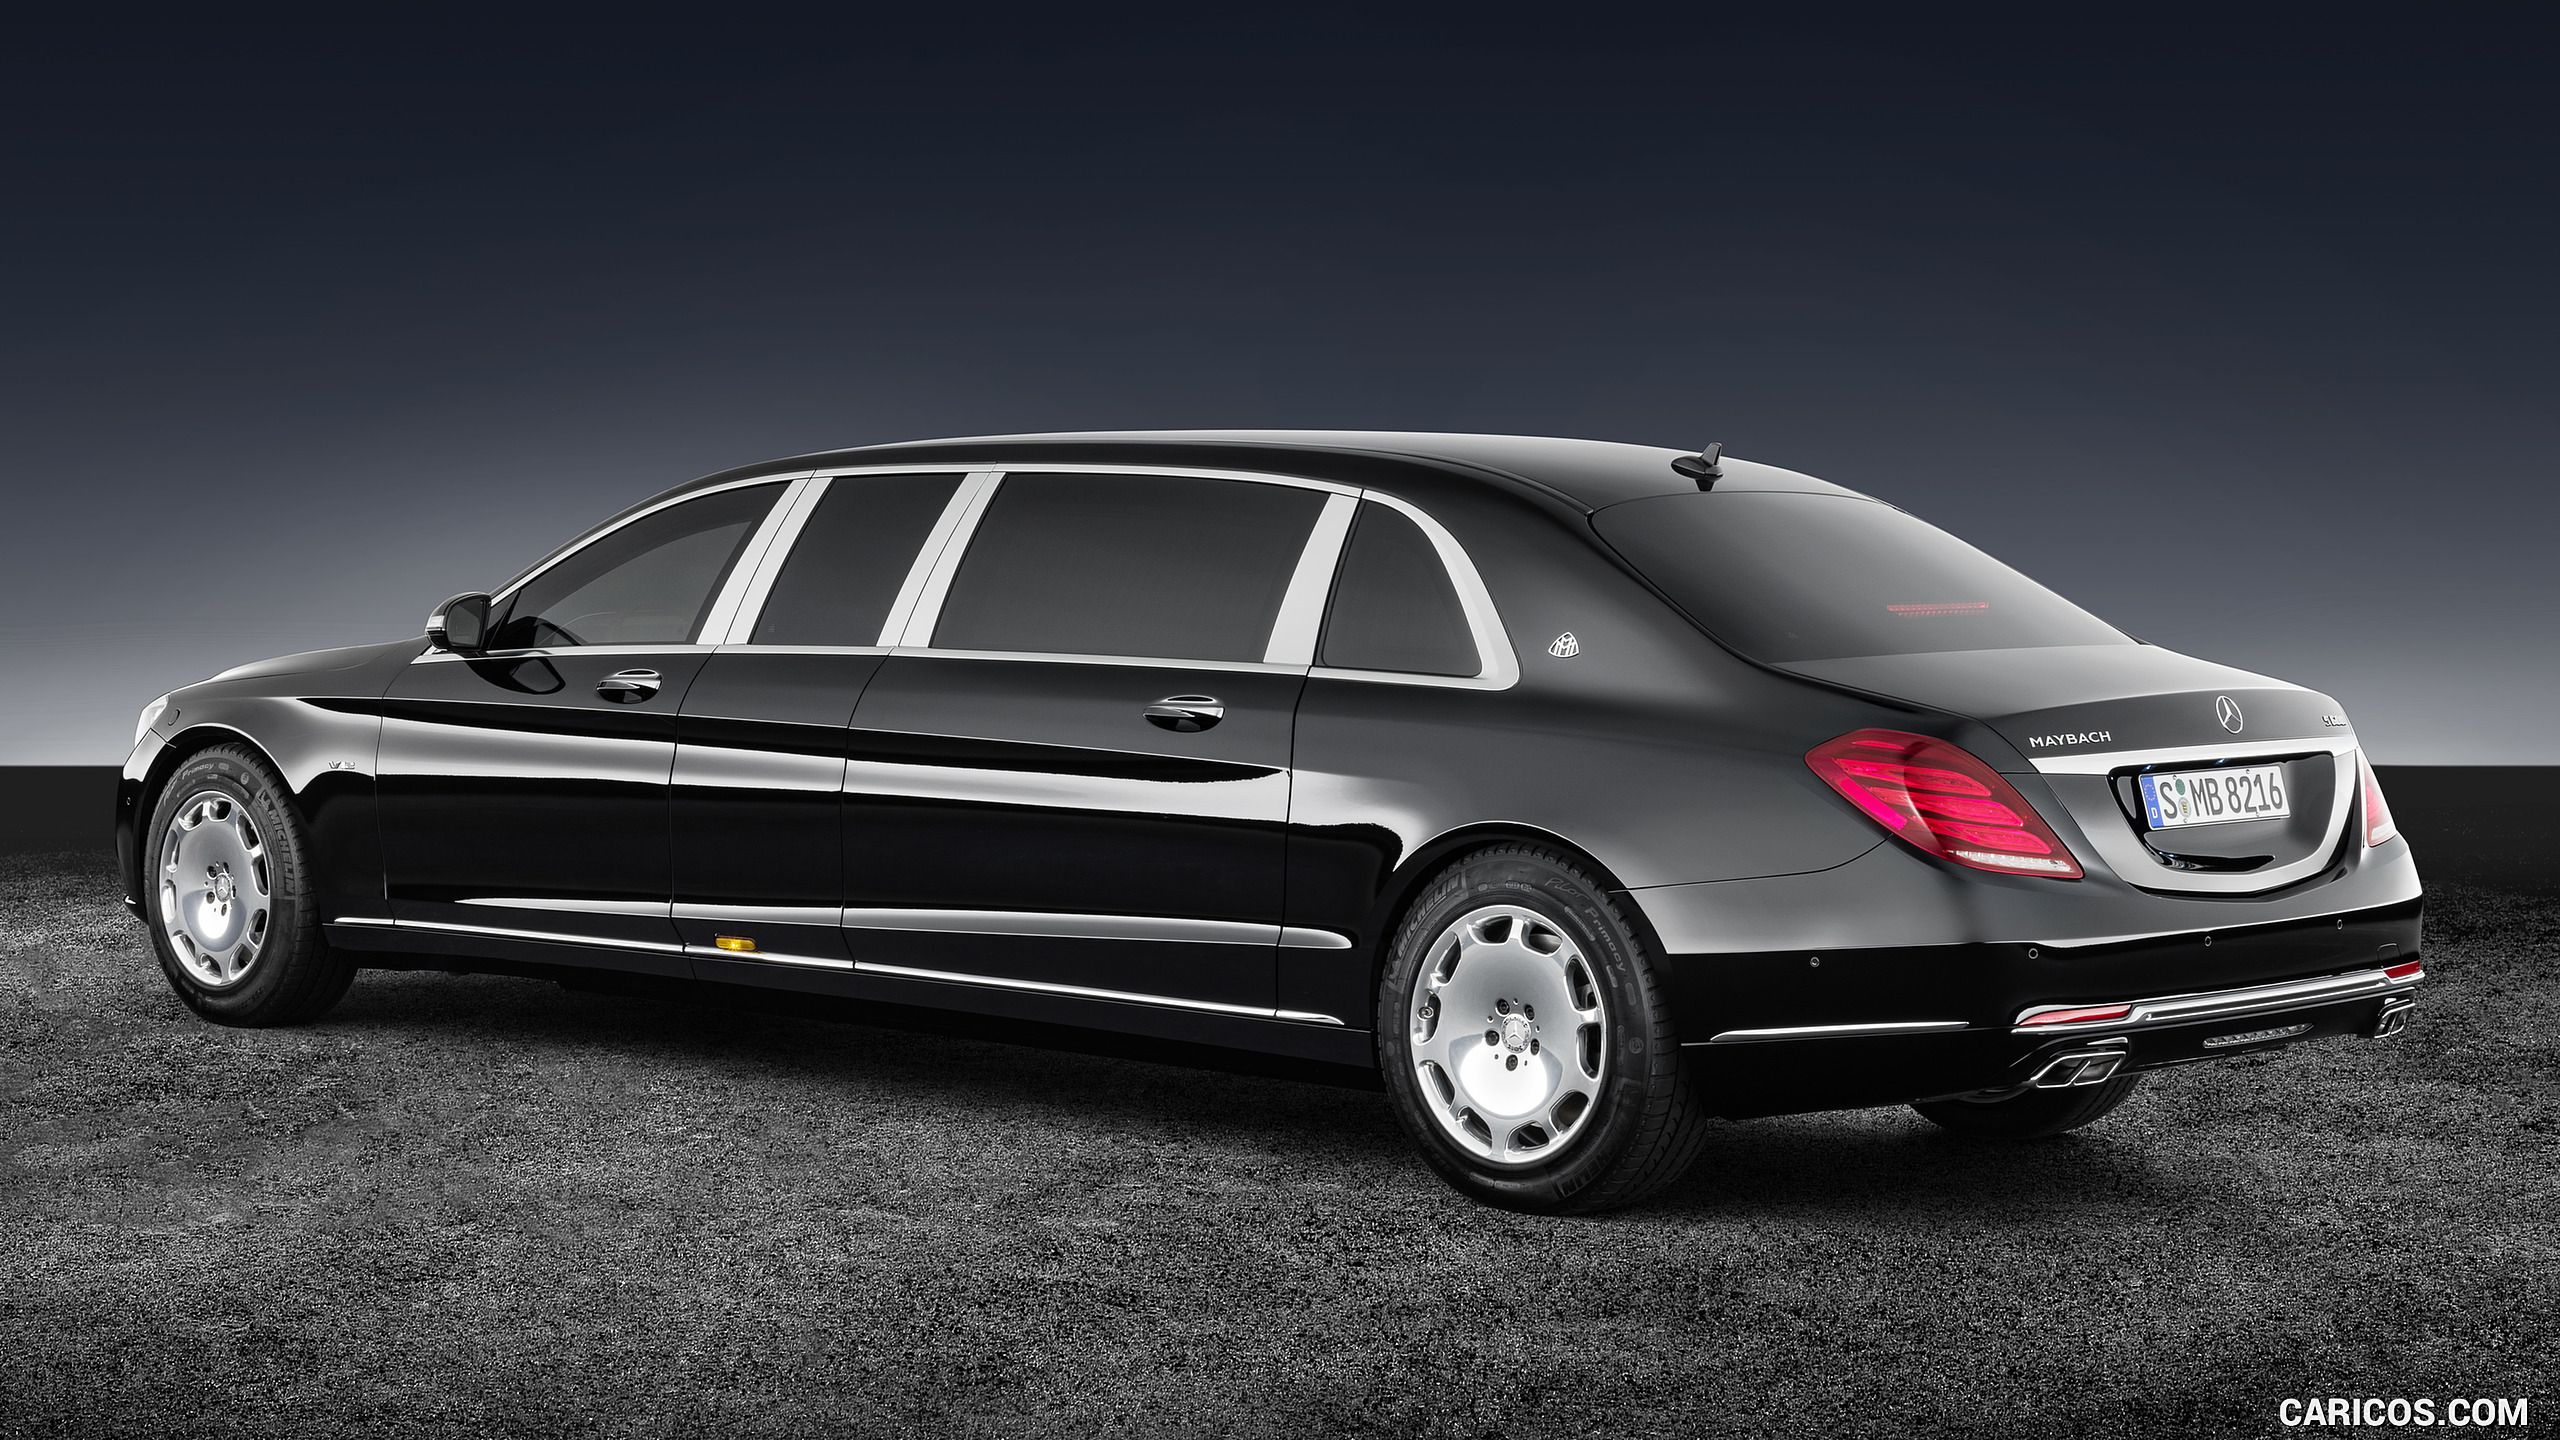 2018 Mercedes-Maybach S 600 Pullman Guard Wallpaper | germany cars ...